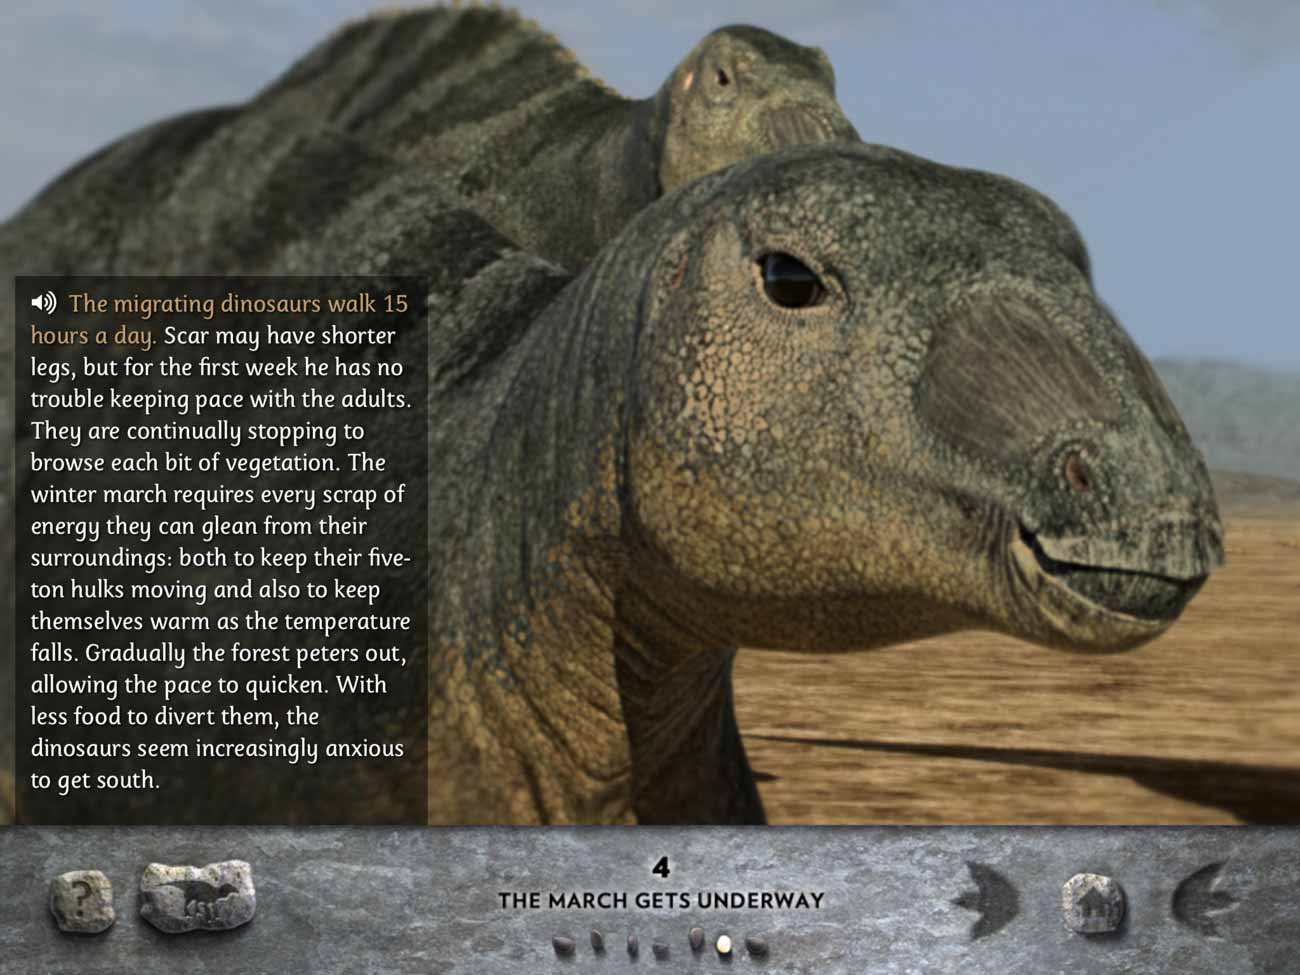 The March of the Dinosaurs app presents the story in both text and audio form.